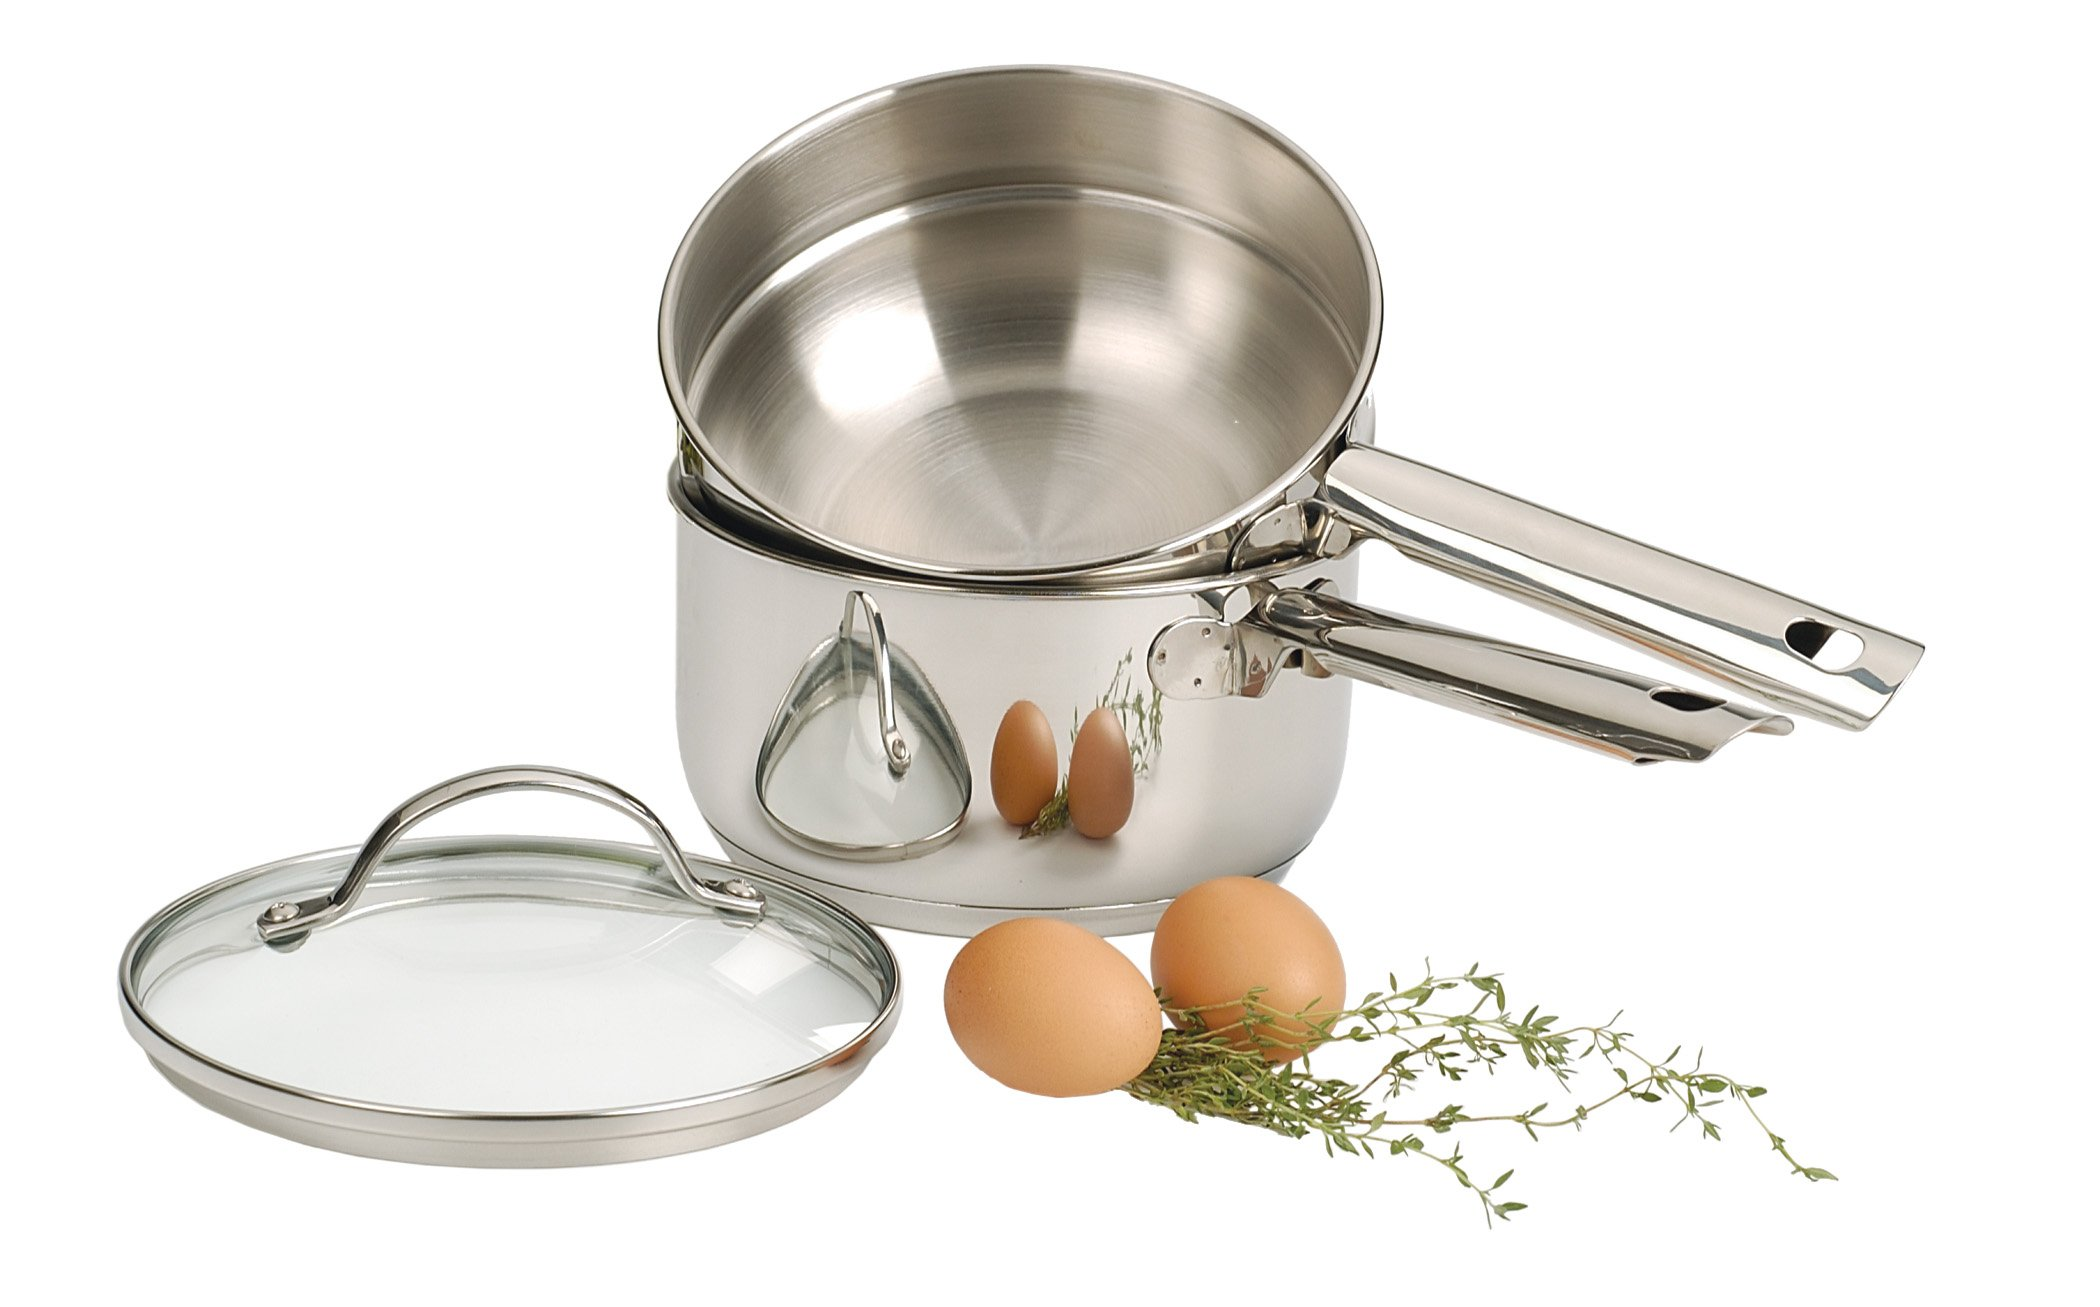 RSVP Endurance 2-Quart Stainless Steel Induction Double Boiler by RSVP International (Image #2)